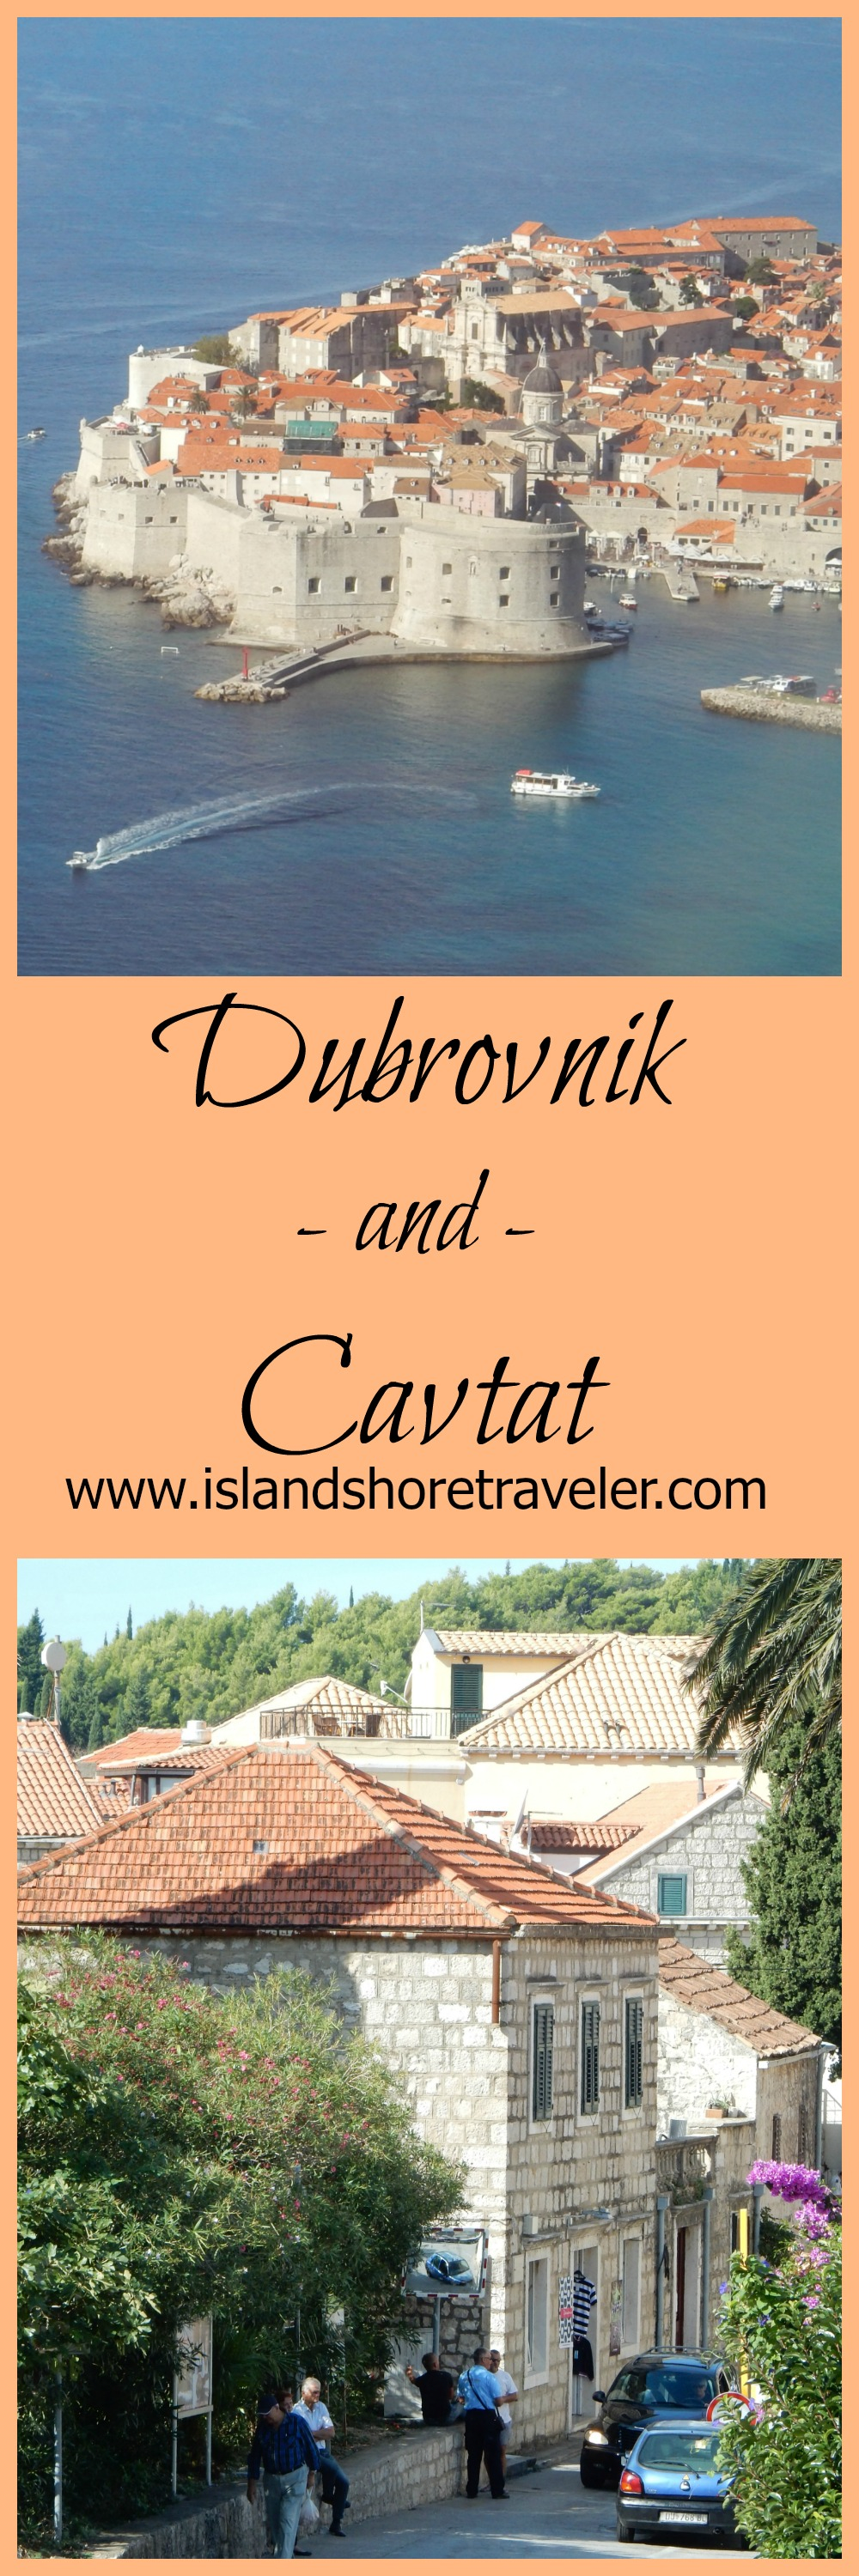 A visit to charming Dubrovnik and Cavtat, Croatia